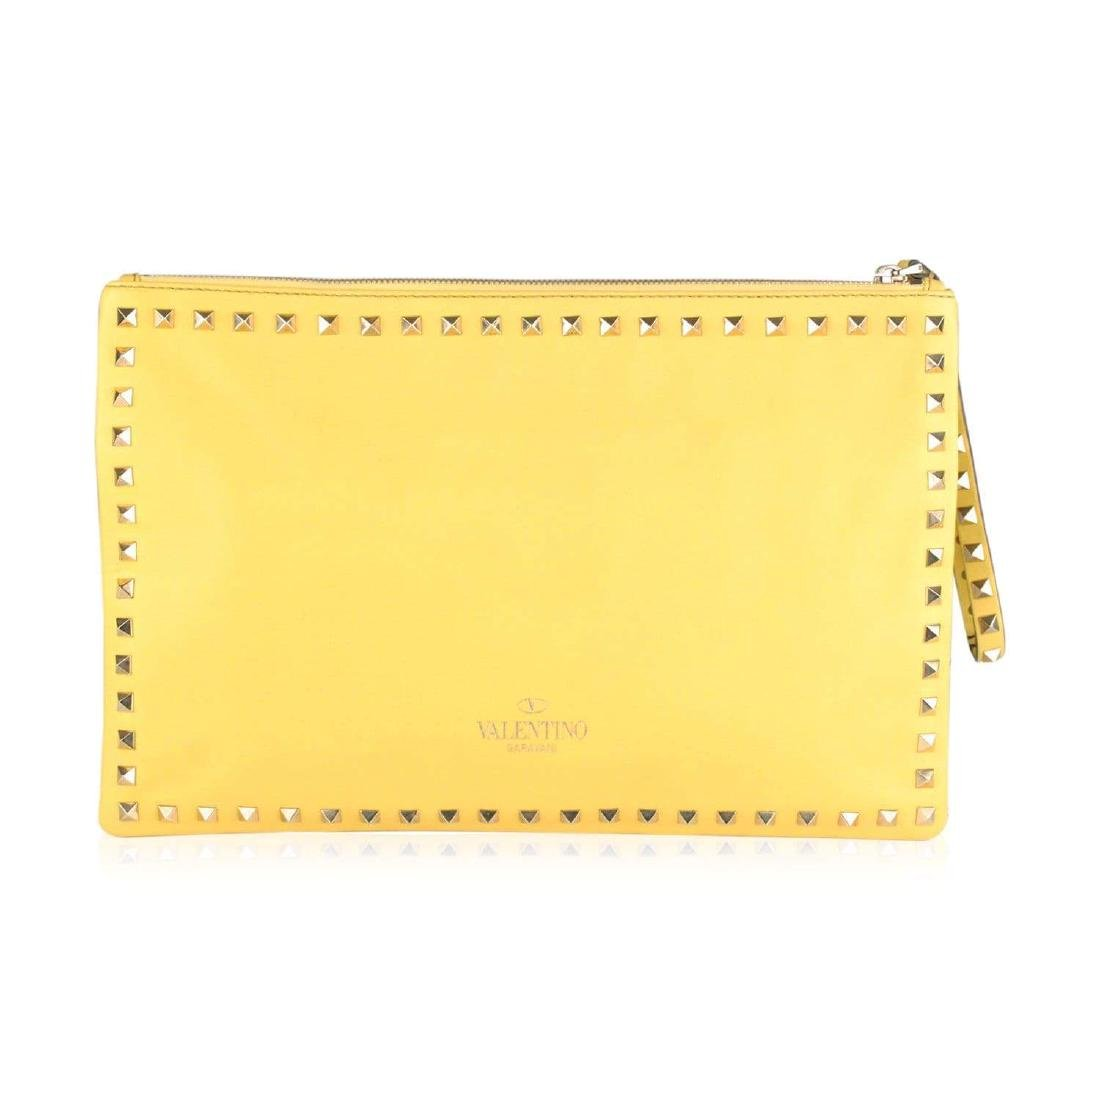 Valentino Rockstud Large Clutch Wrist Bag